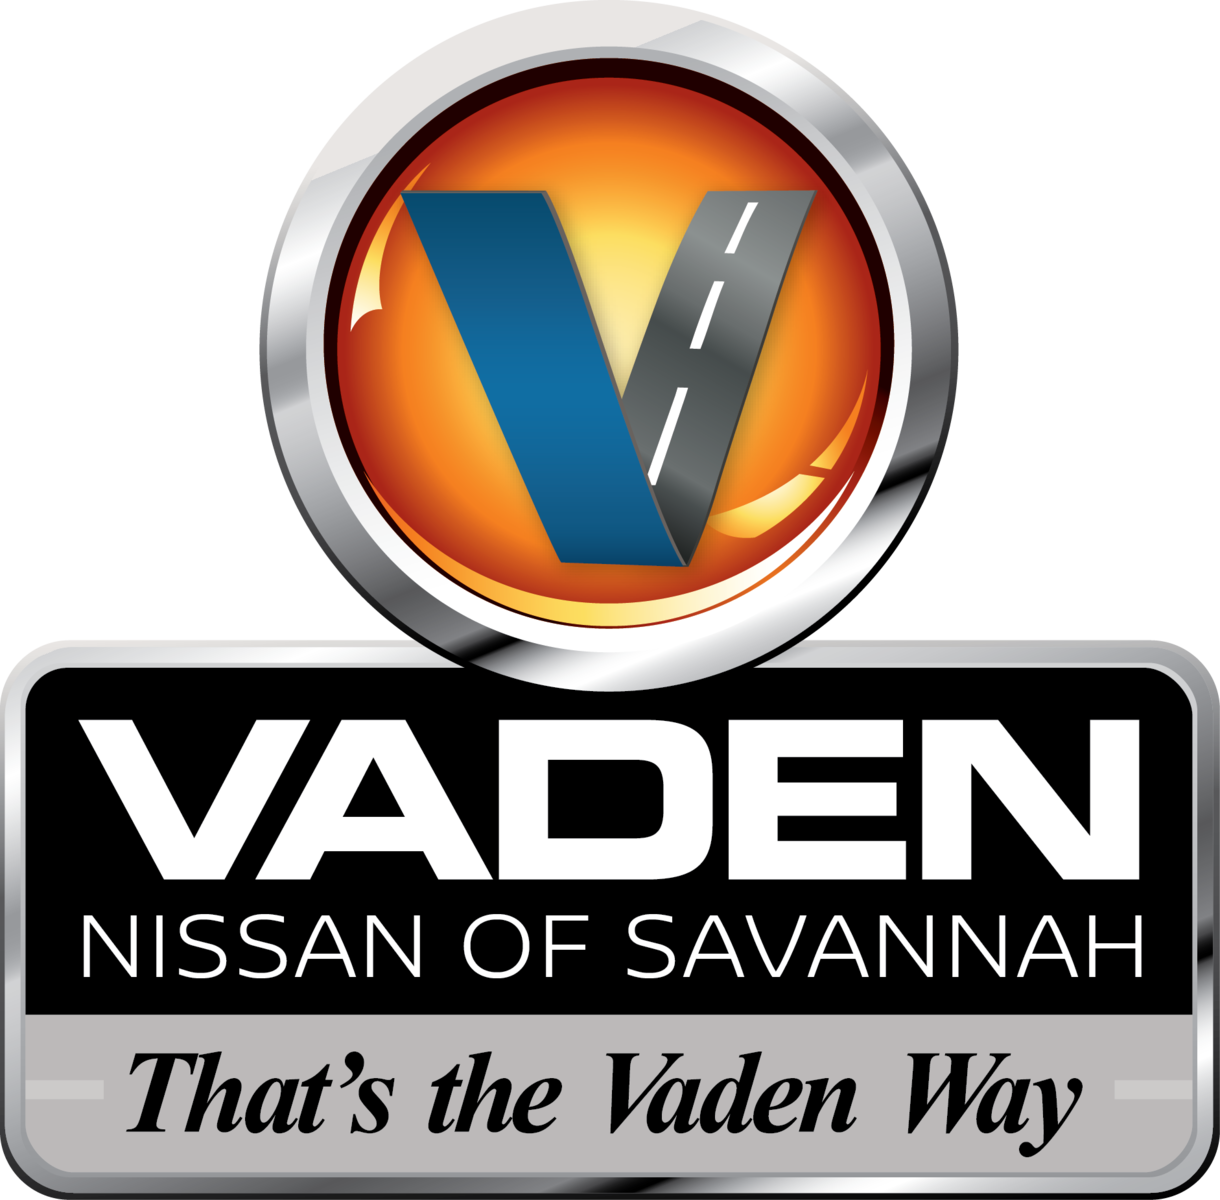 Vaden Nissan of Savannah - Savannah, GA: Read Consumer reviews, Browse Used and New Cars for Sale